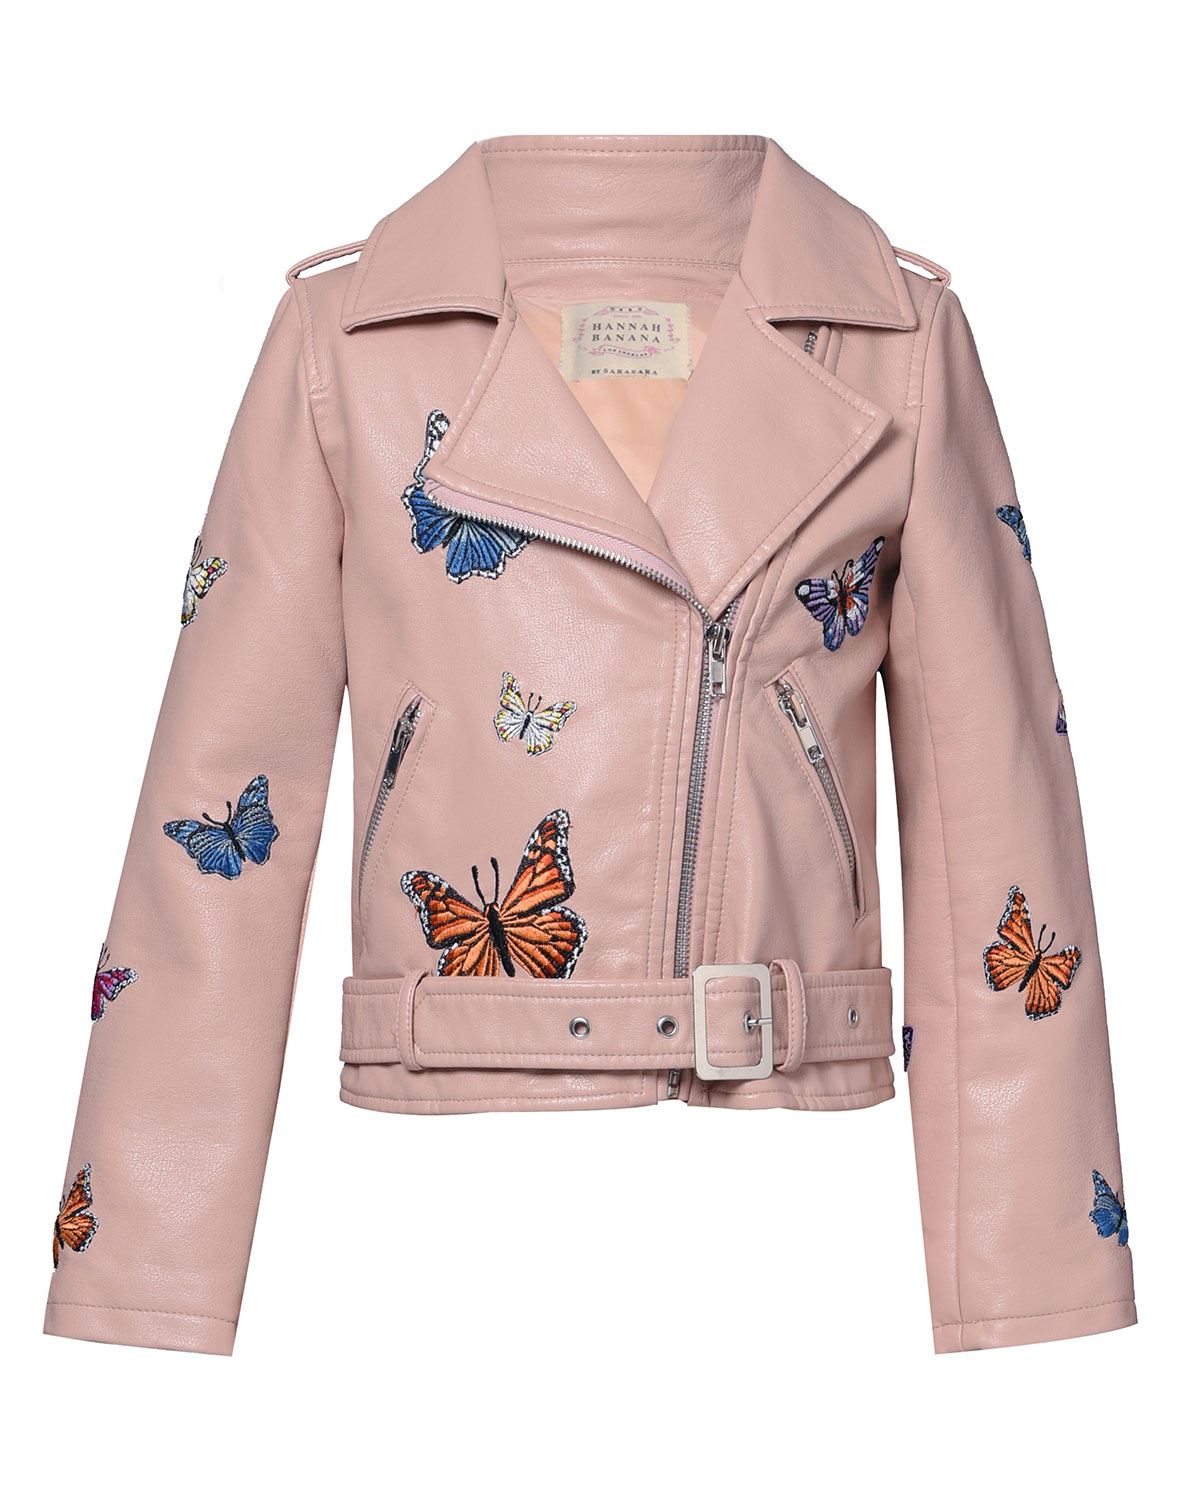 Hannah Banana Girl's Vegan Leather Butterfly Moto Jacket, Size 4-6X